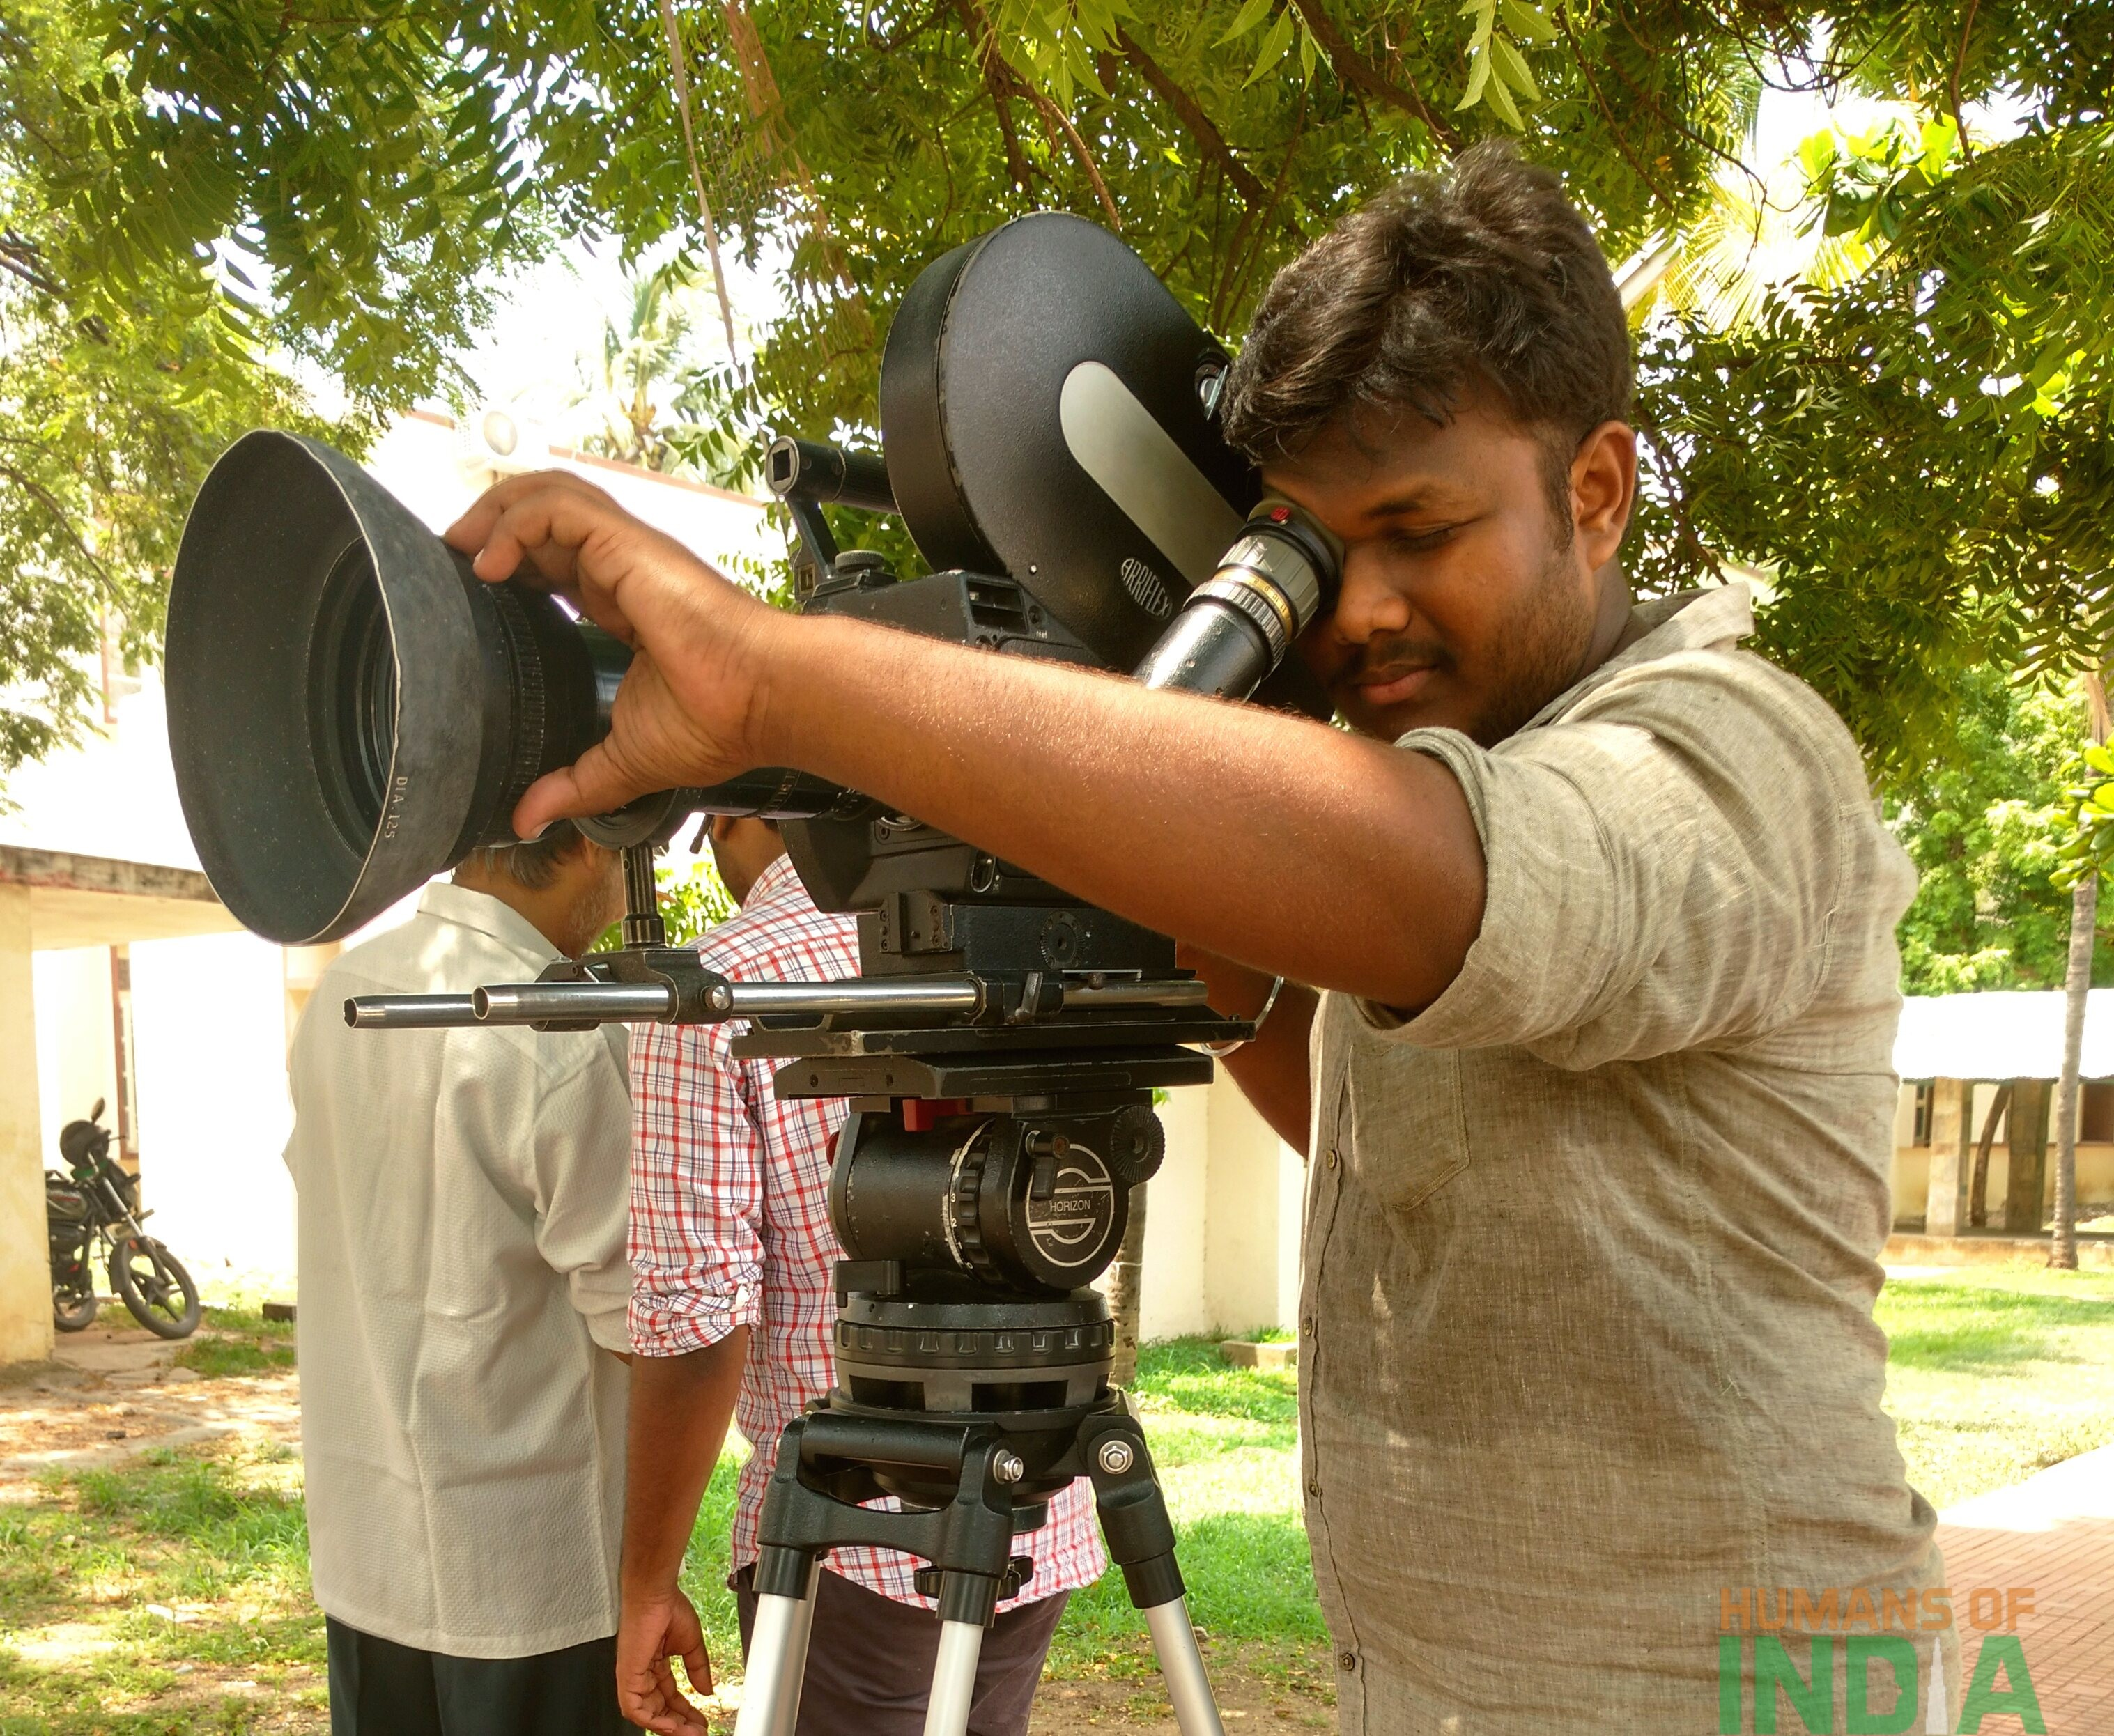 The Cinematographer